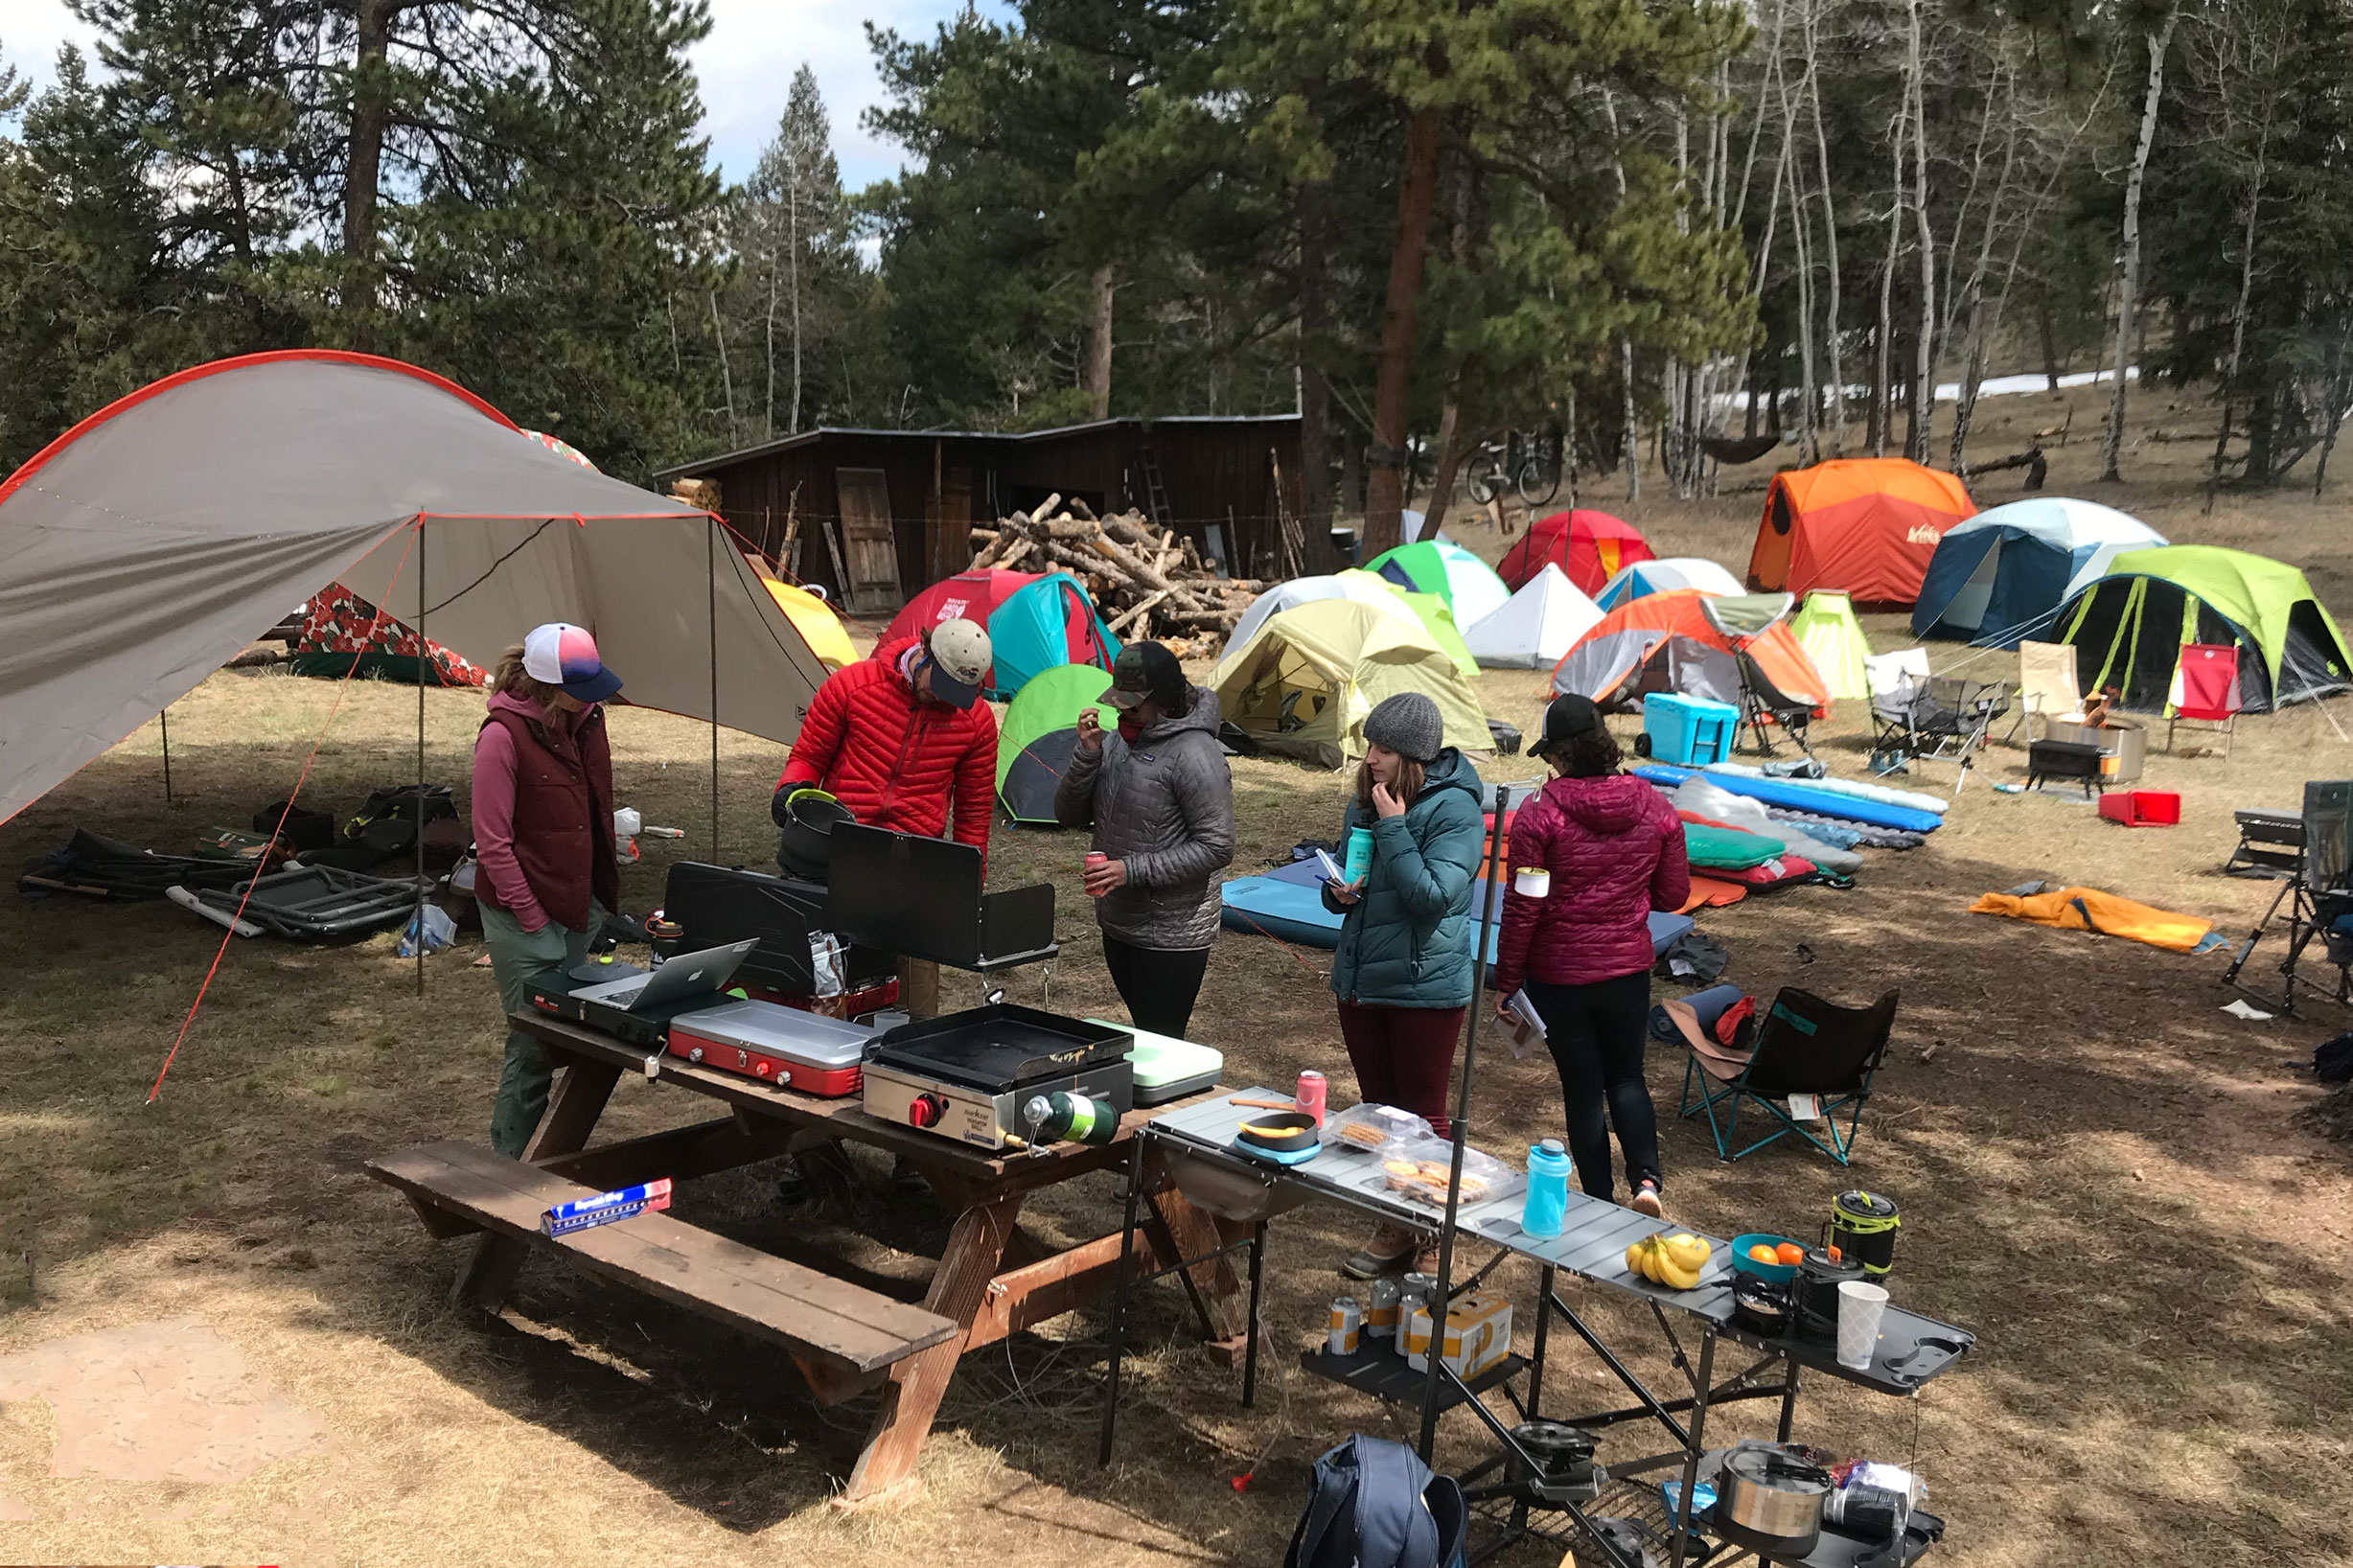 2019 Camp Gear Test campsite